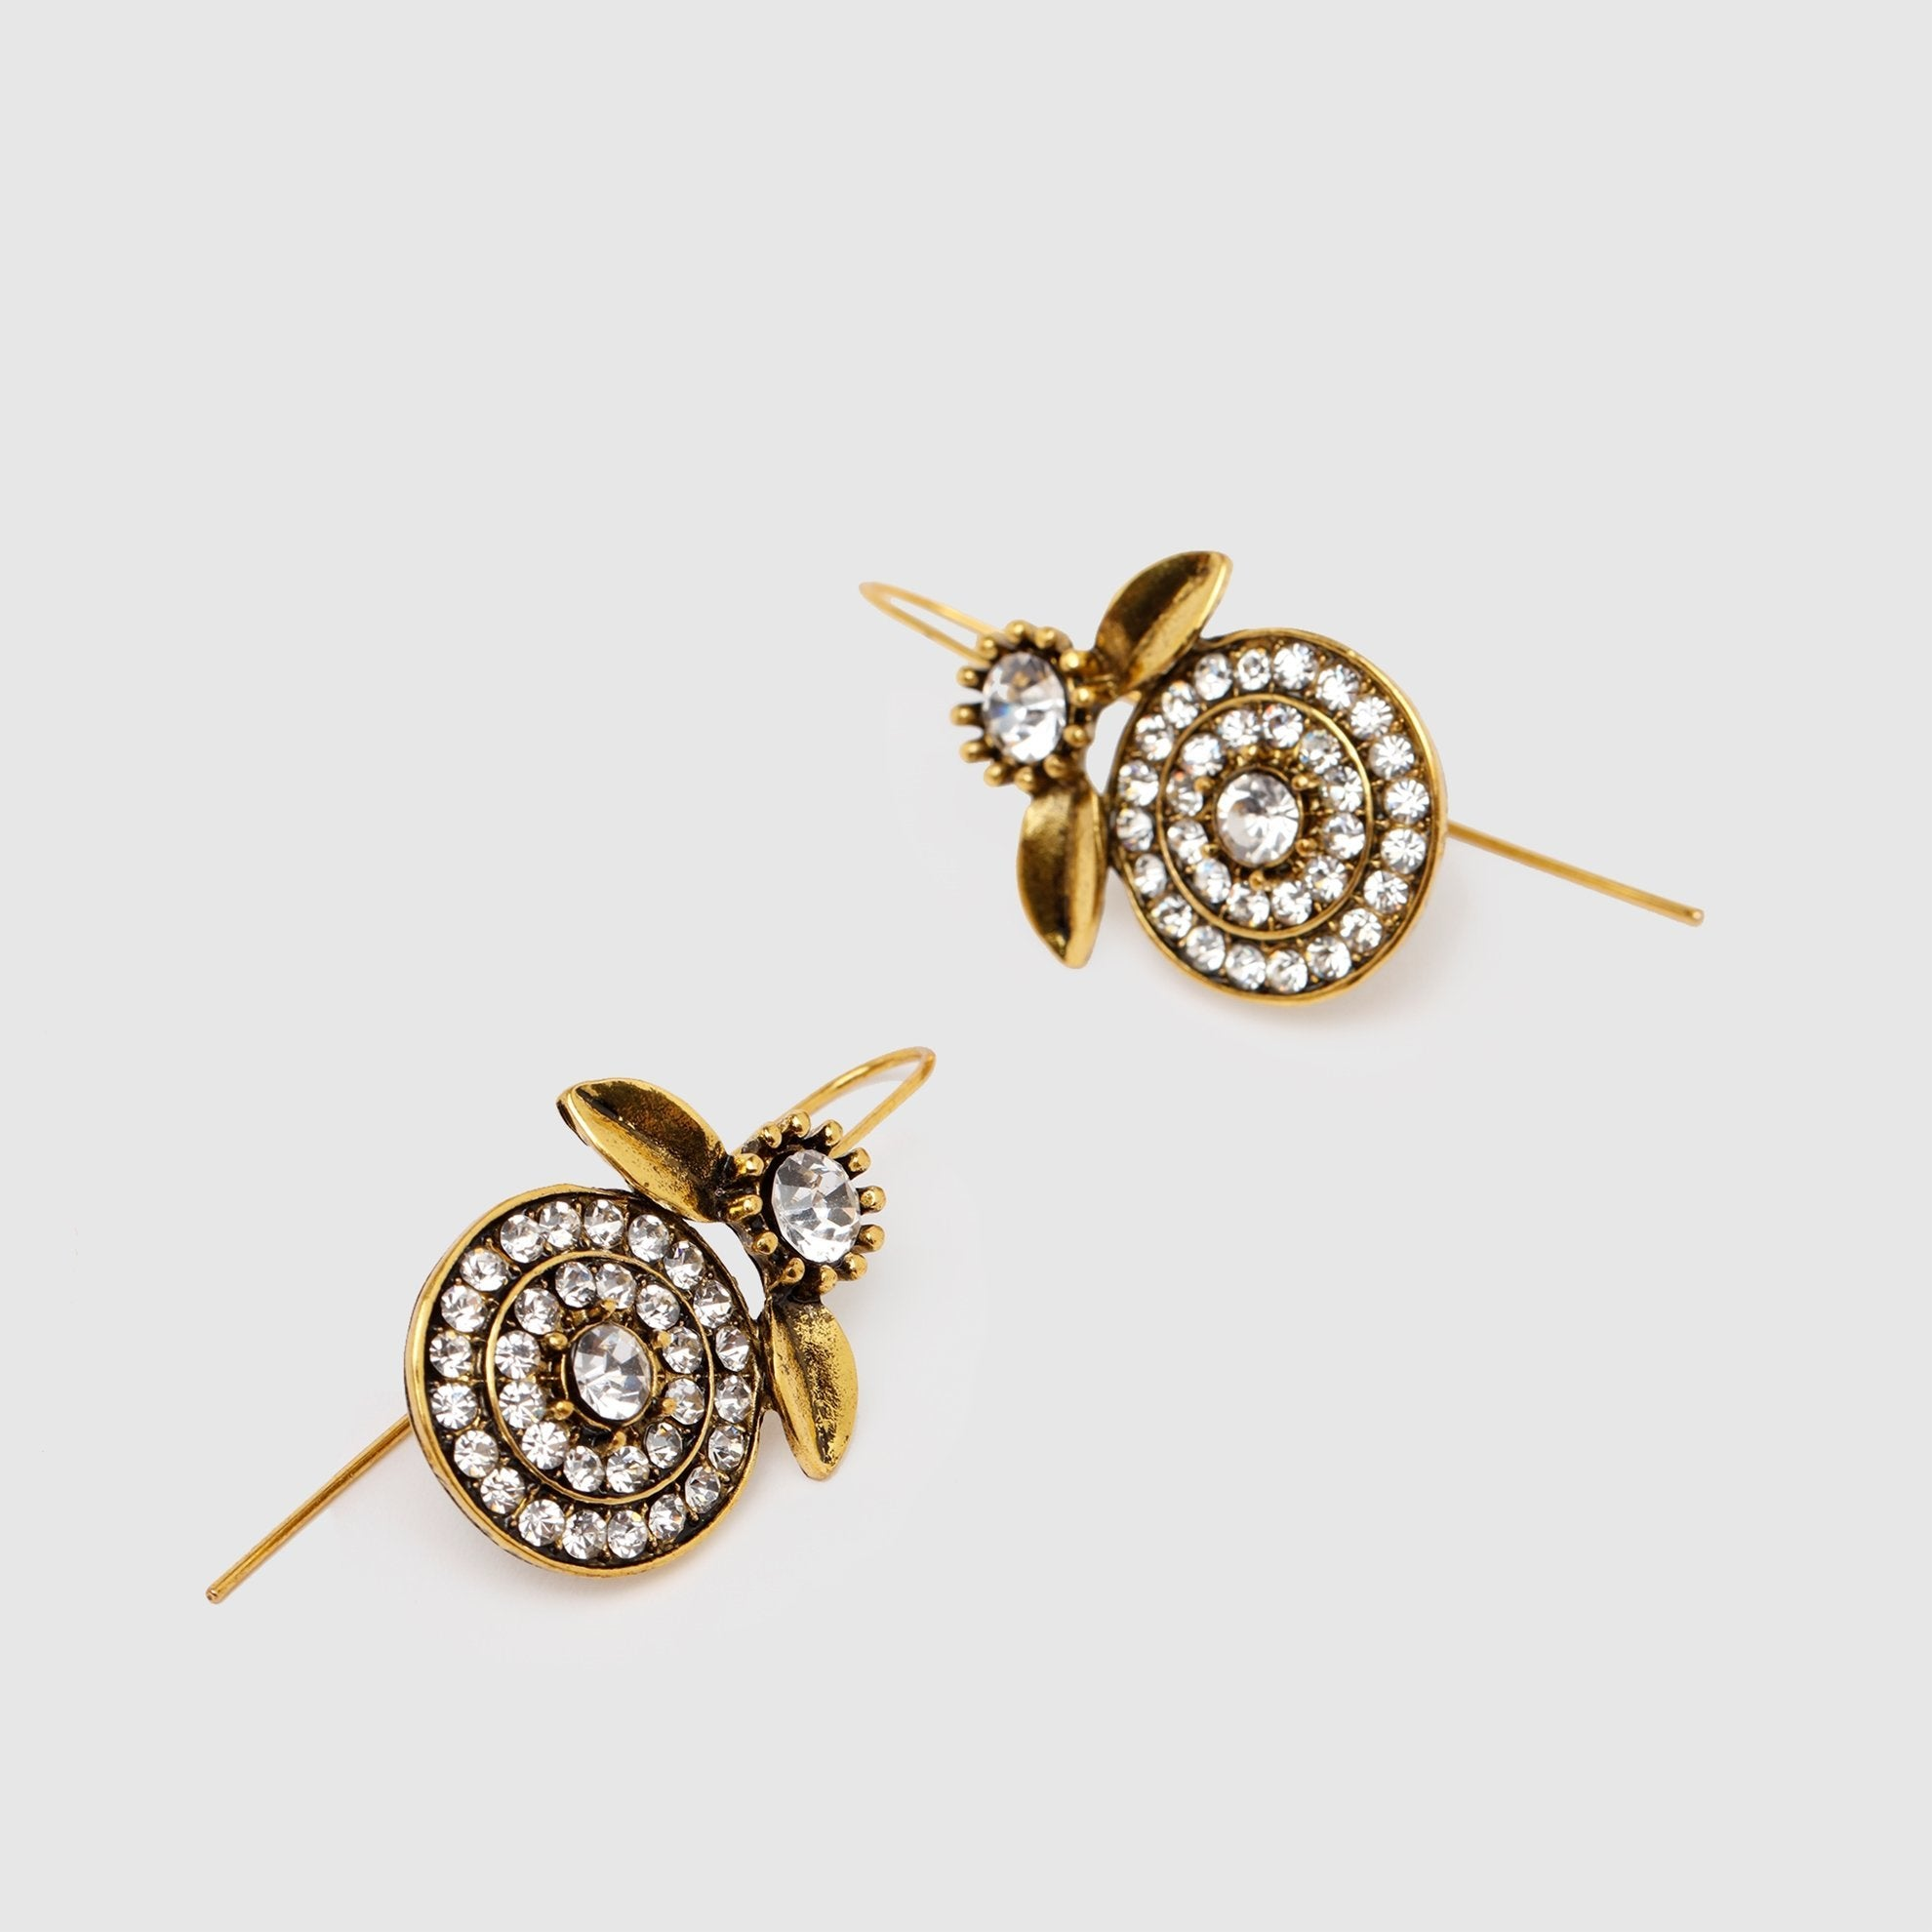 Golden White Stone Earrings Stud Detail